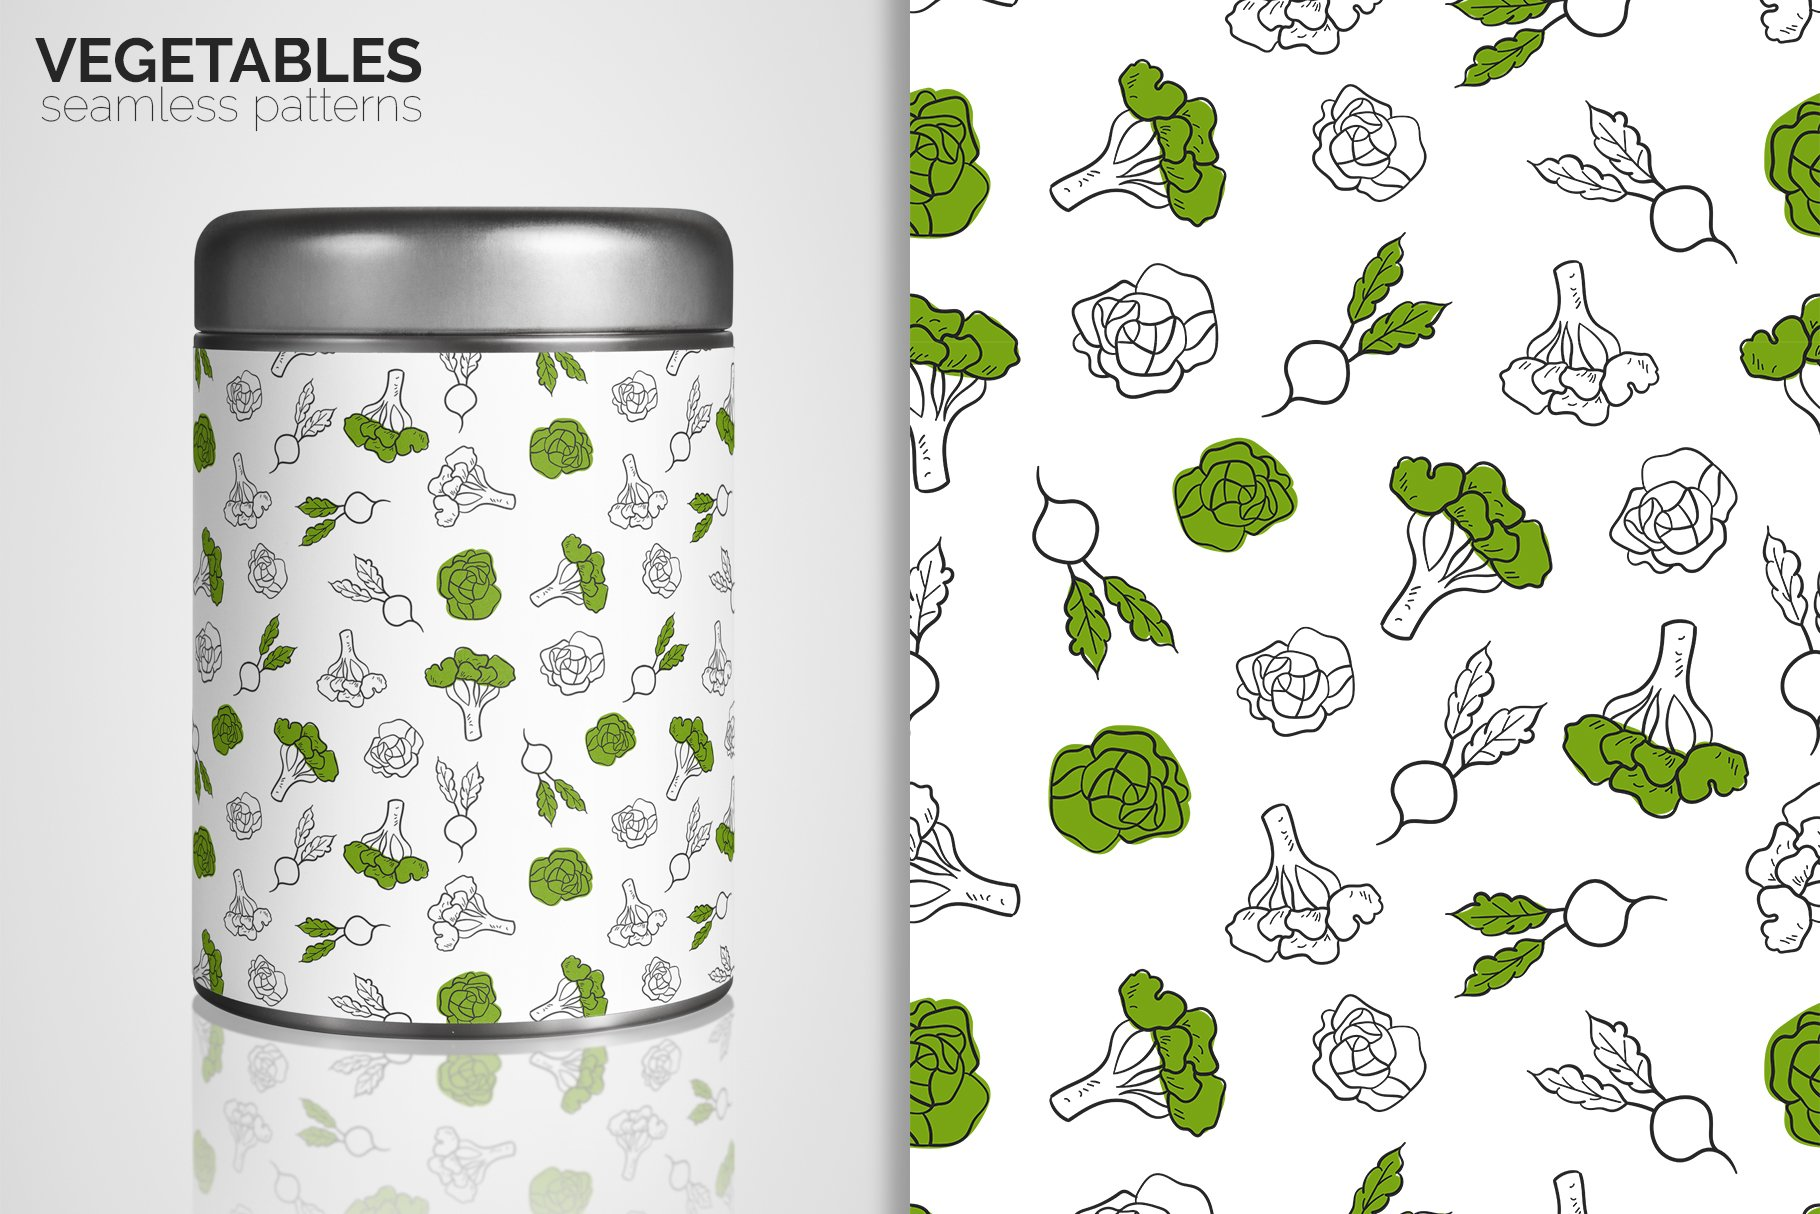 Vegetables Seamless Patterns example image 4